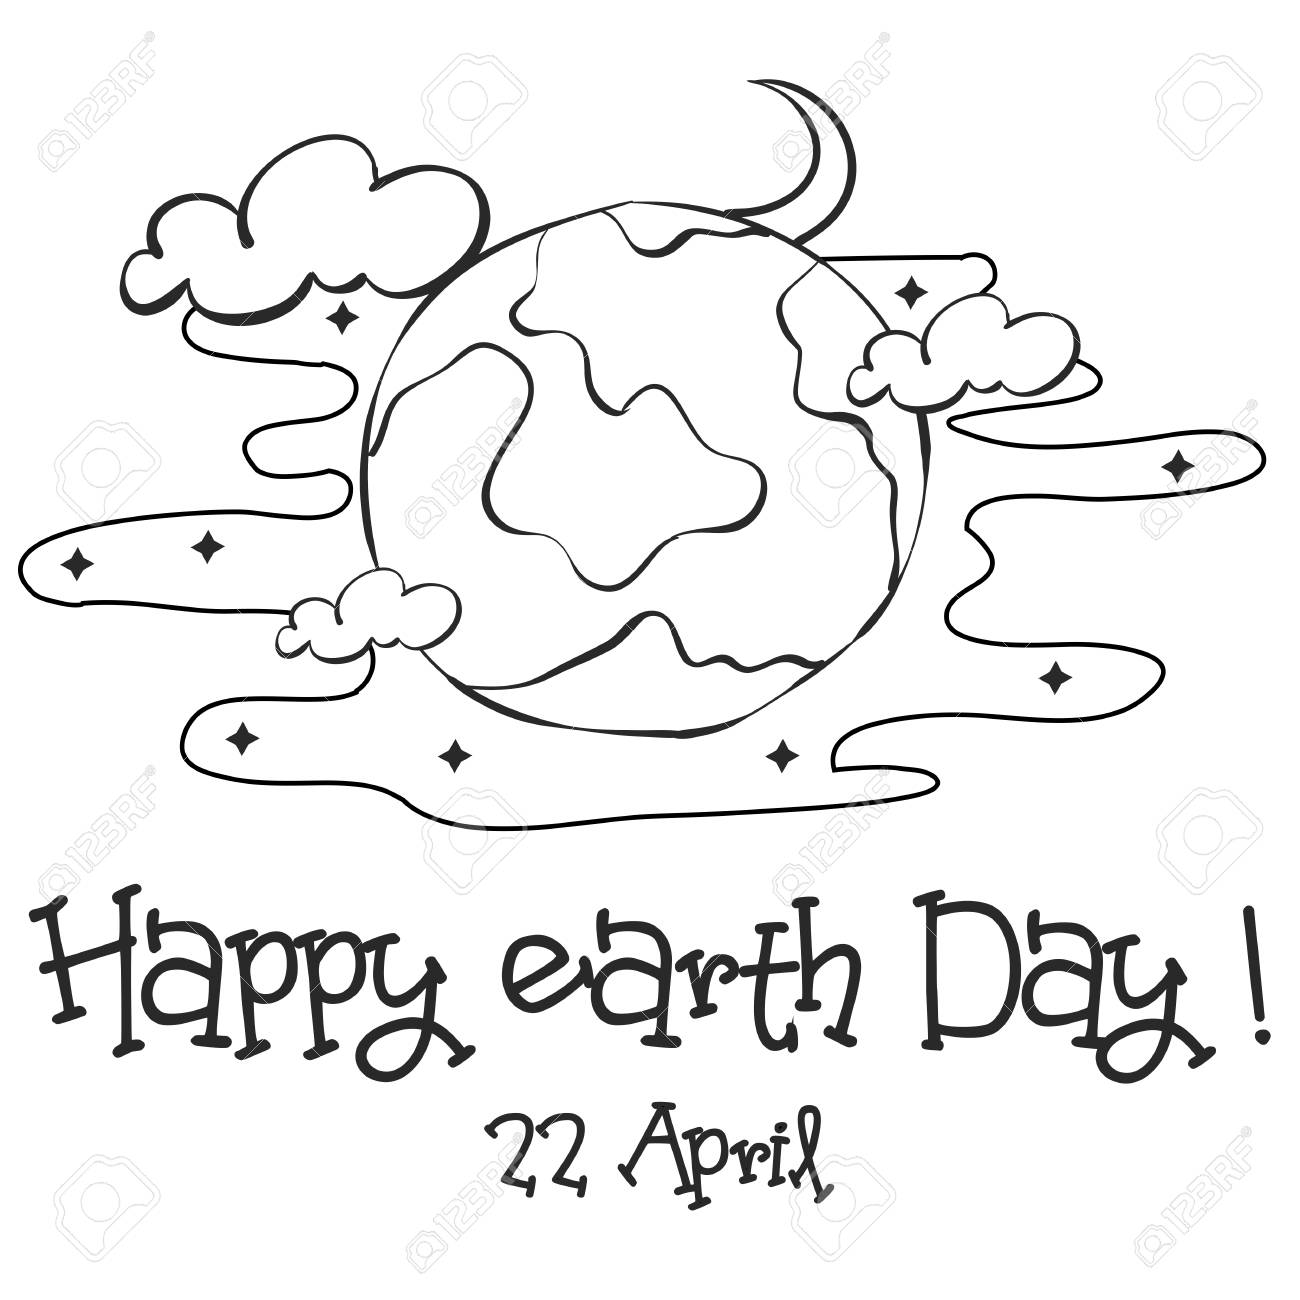 Happy Earth Day Sketch Hand Draw